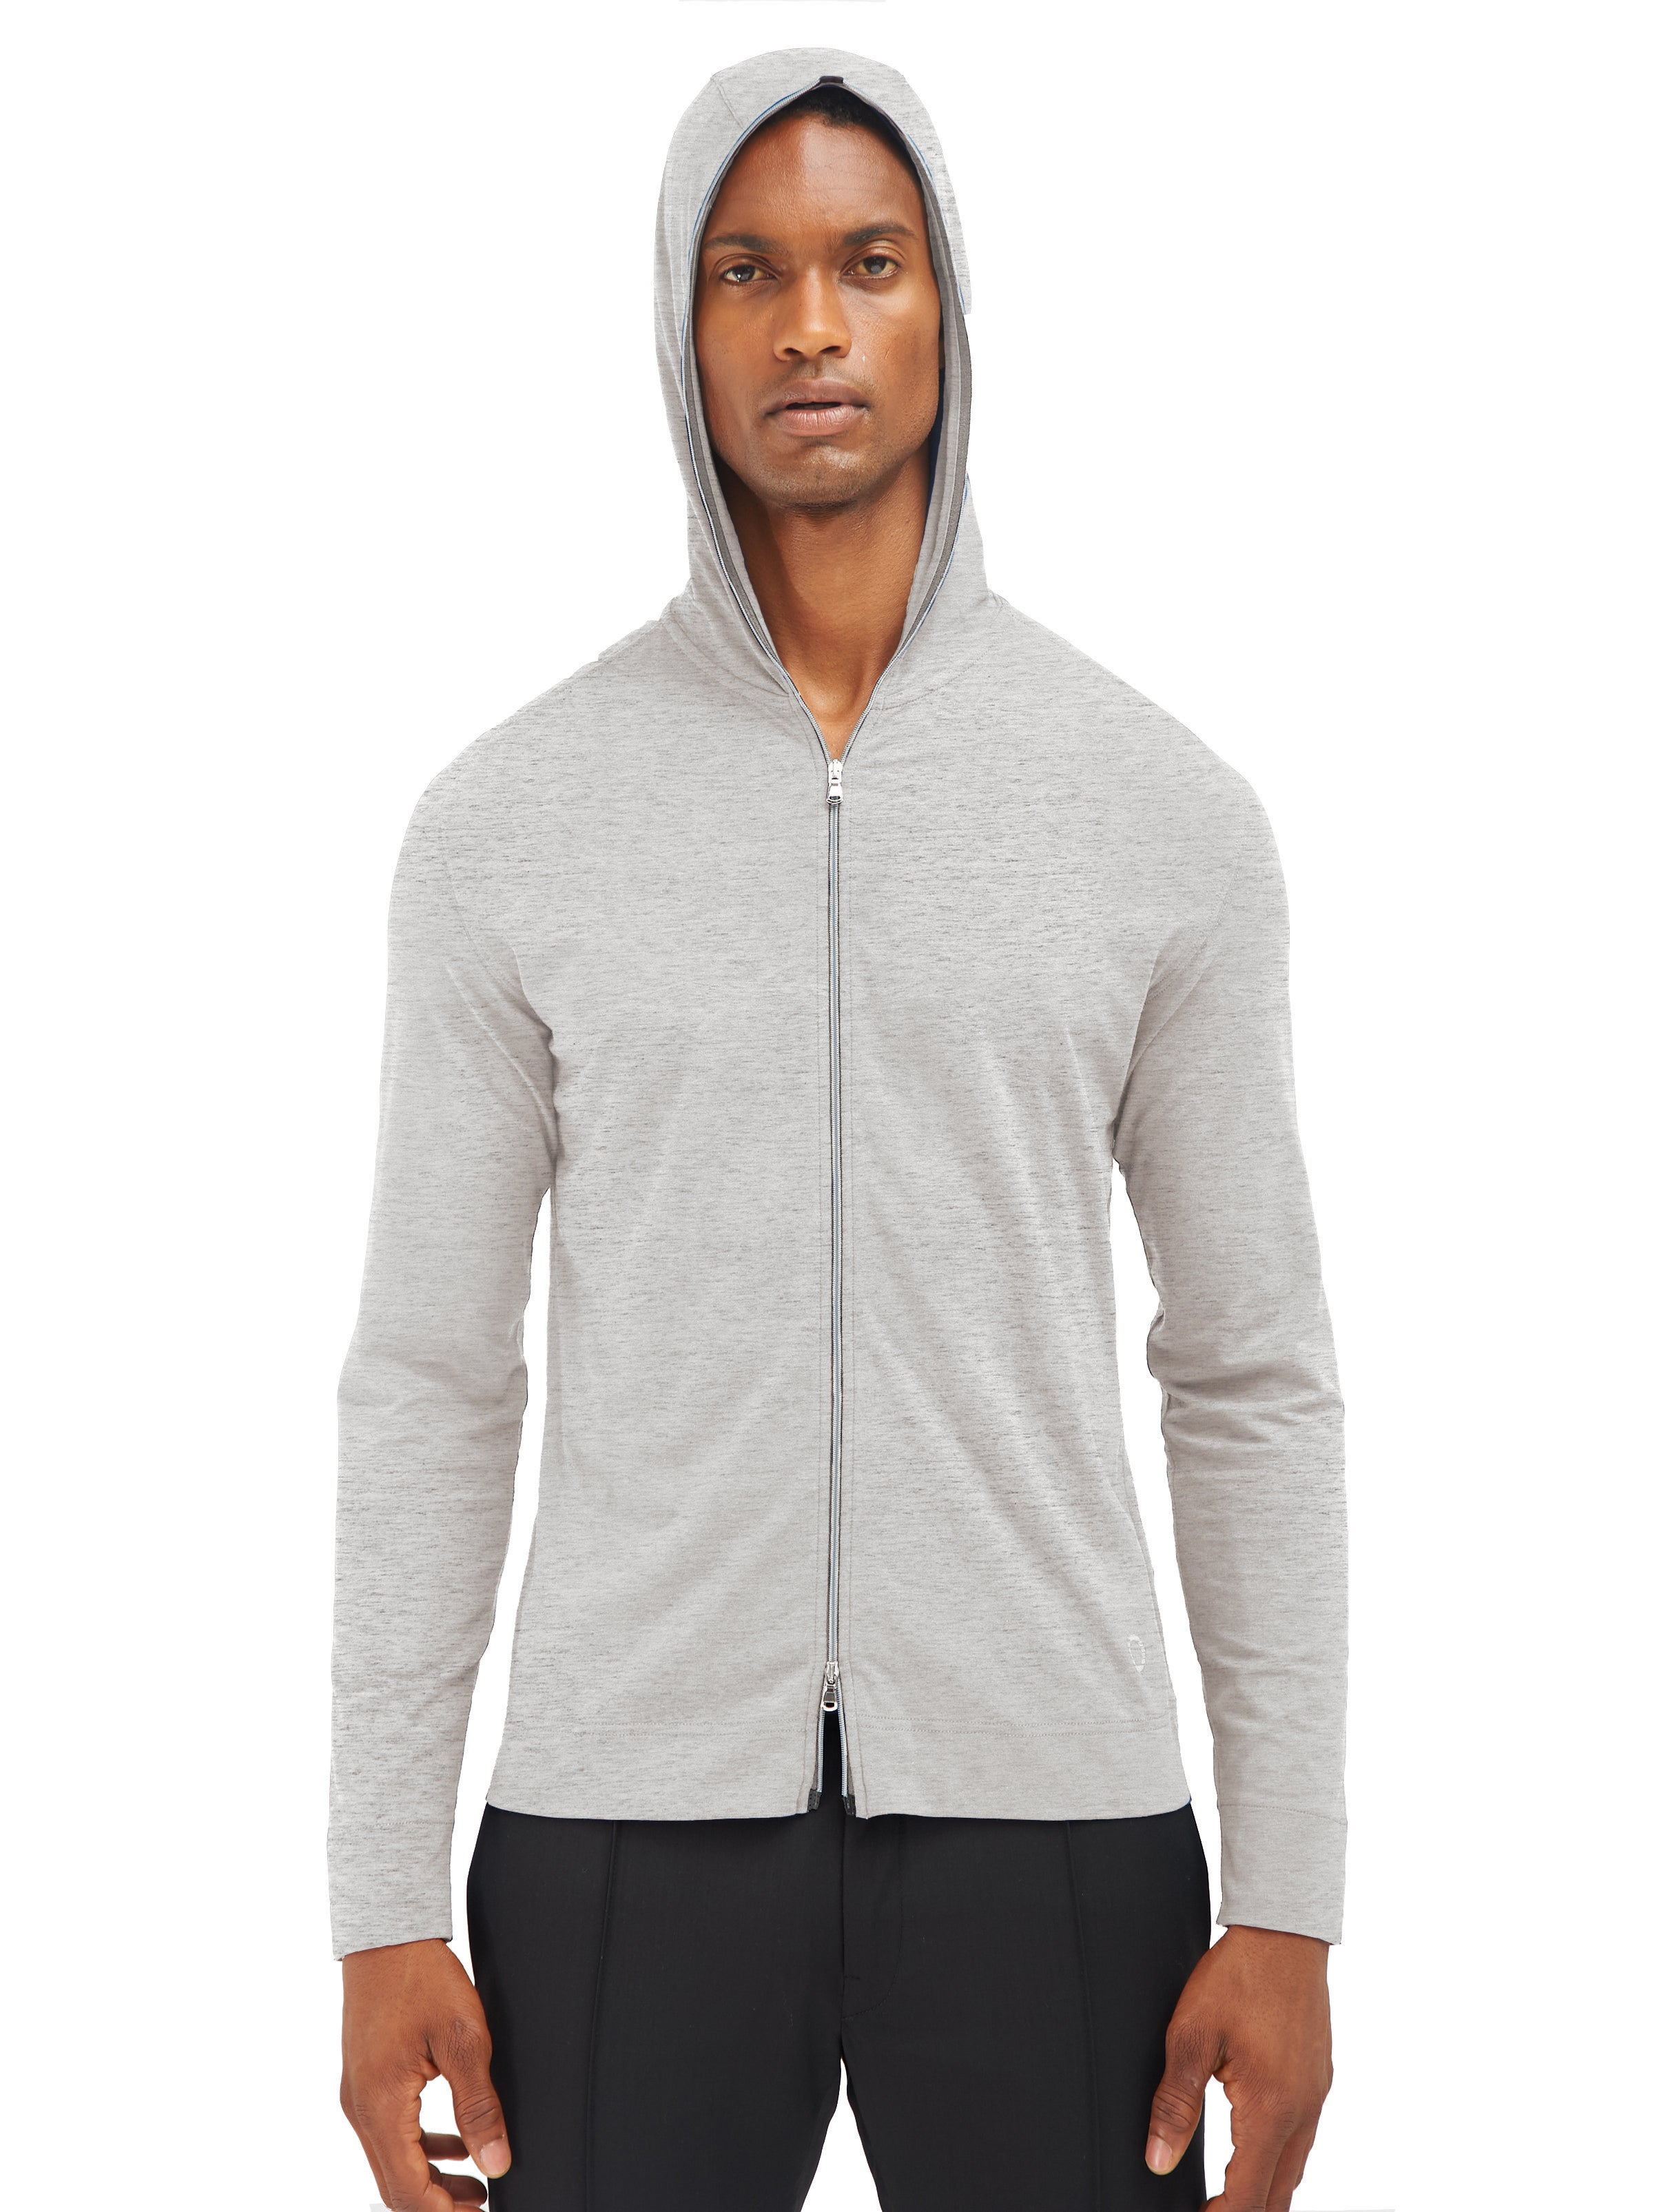 Ealing Hooded Pullover